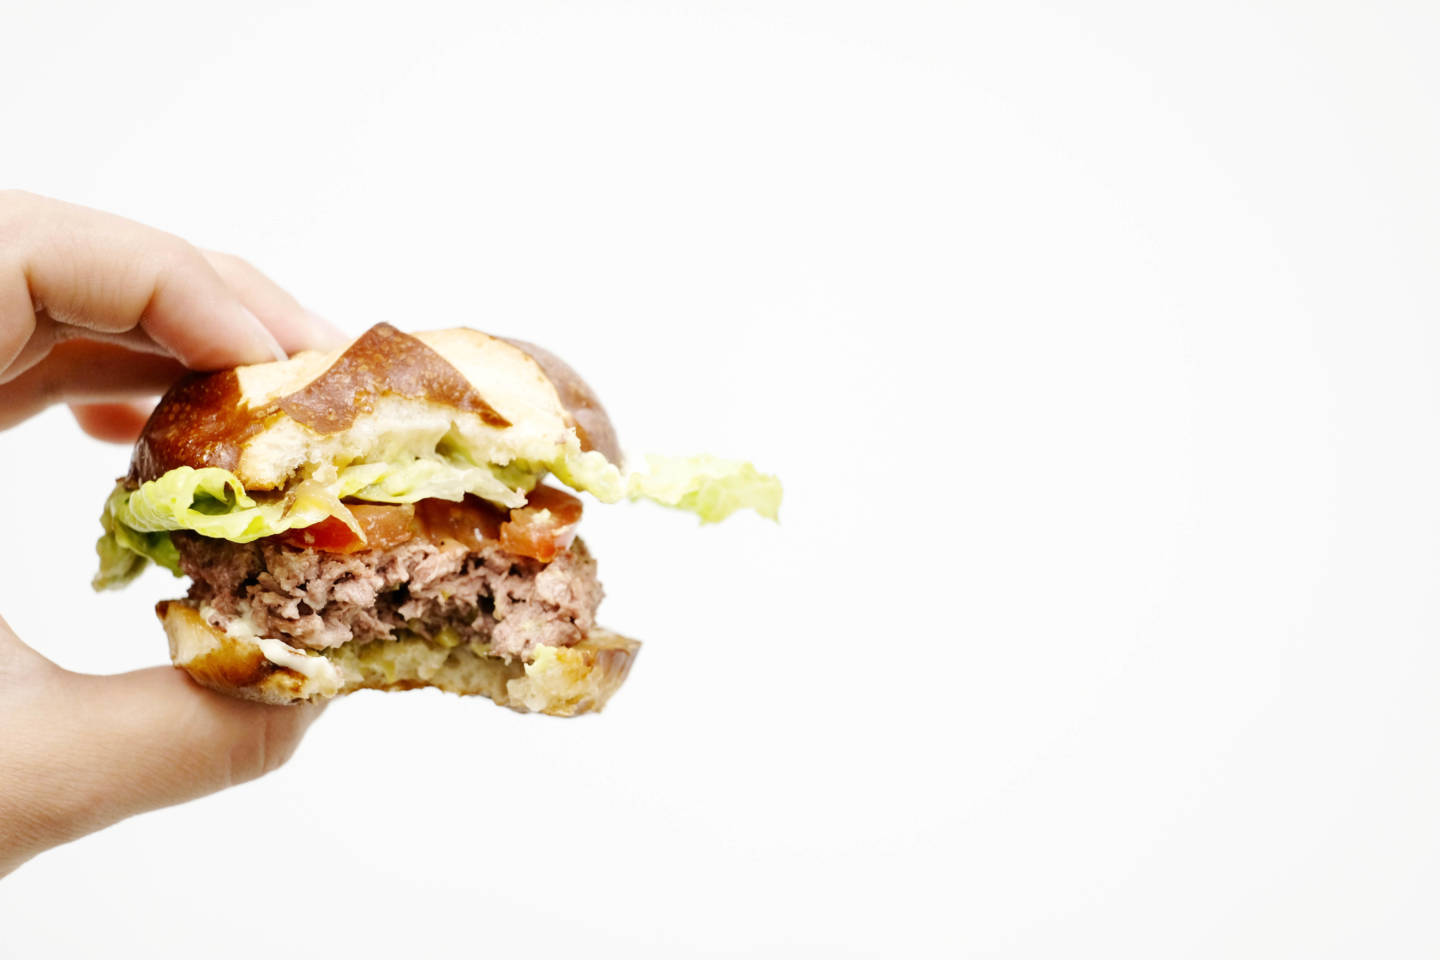 impossible-foods-2485-1440x960.jpg